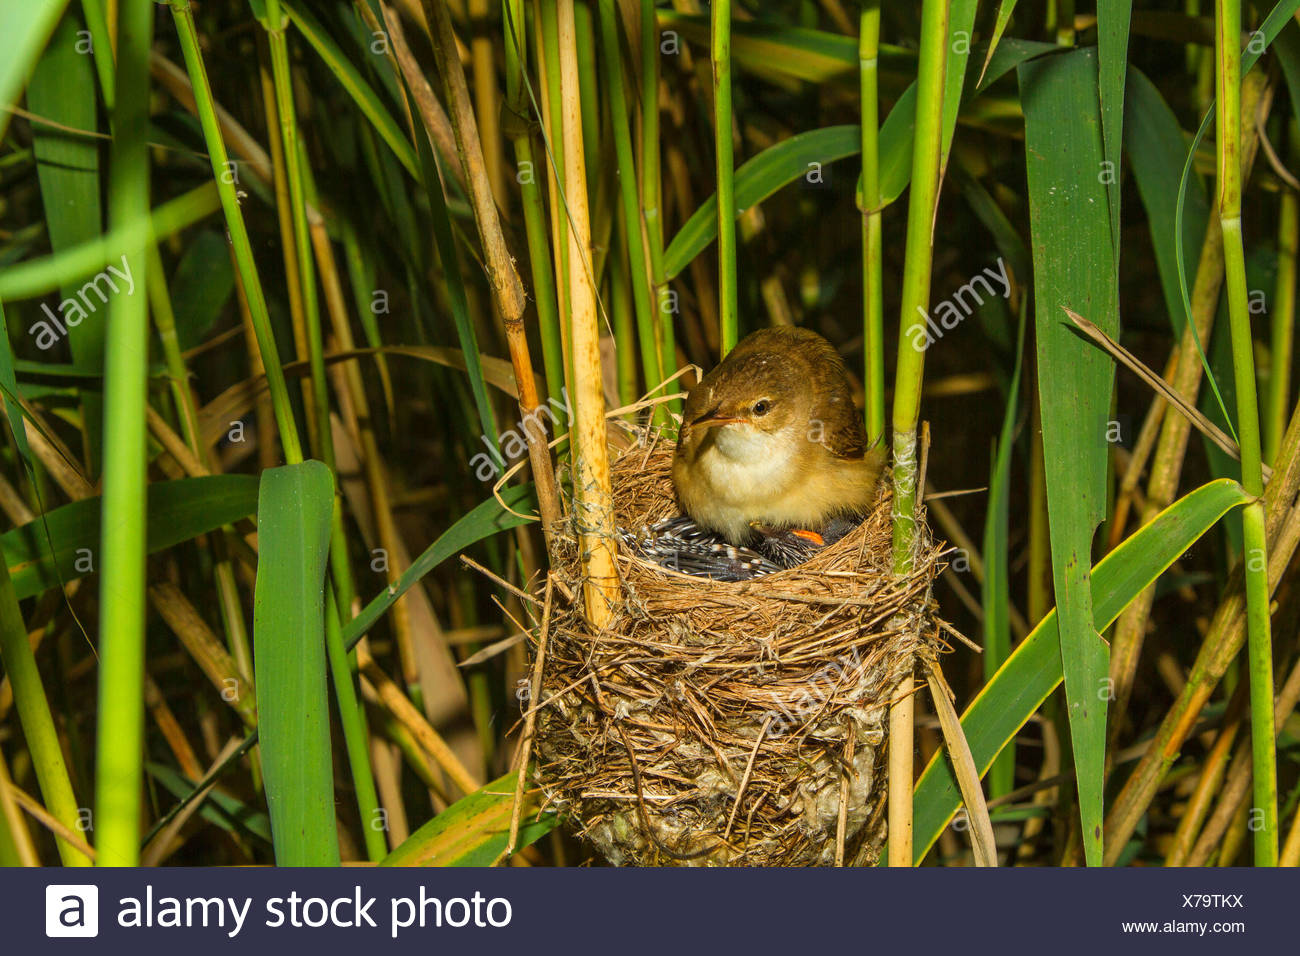 Eurasian cuckoo (Cuculus canorus), reed warbler gathering under the wings a six days old young cuckoo in the nest, Germany, Bavaria, Oberbayern, Upper Bavaria - Stock Image